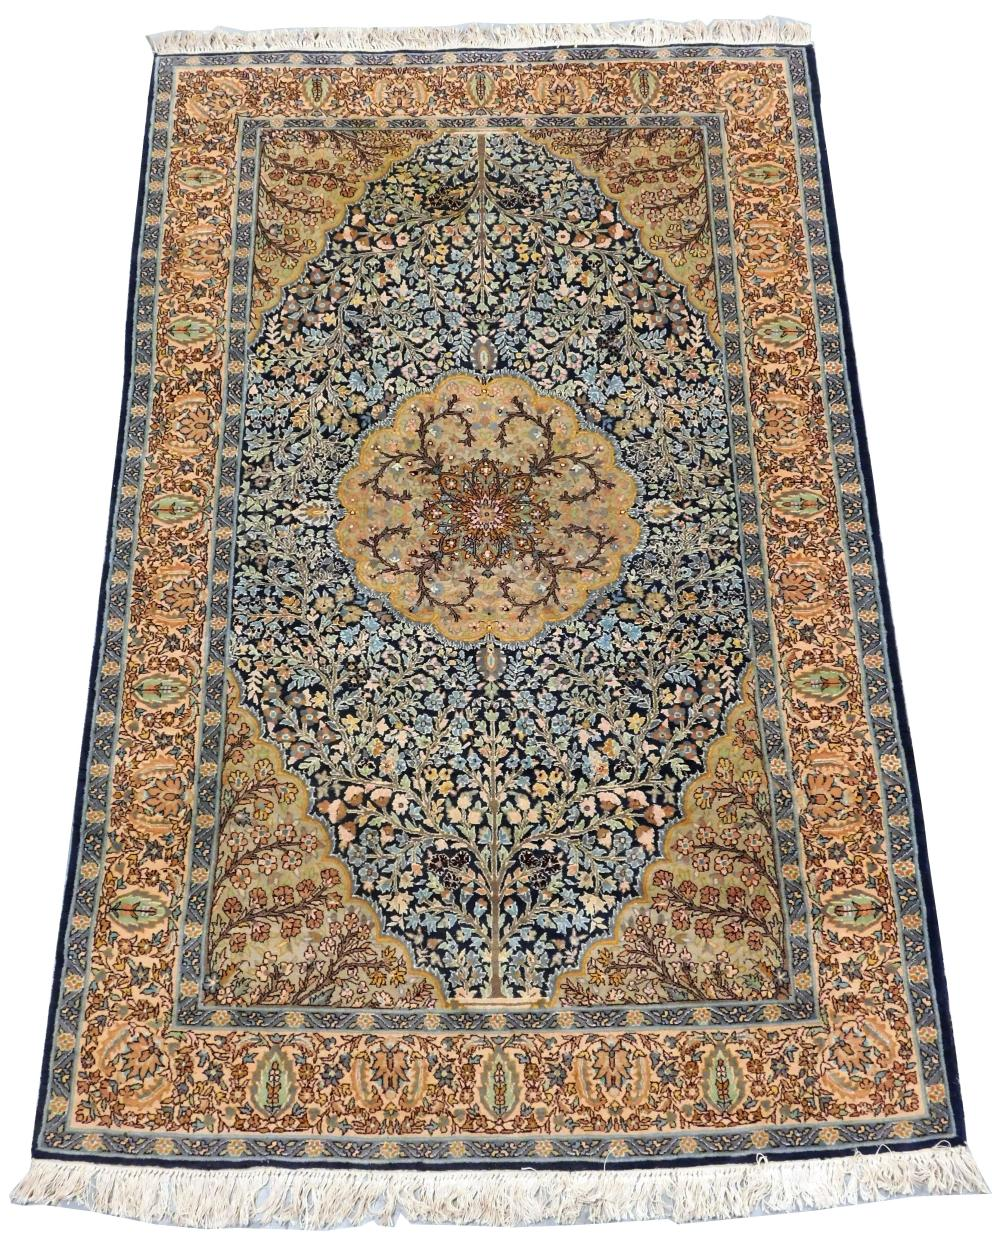 "RUG: Modern Persian style, 4' 6"" x 7' 2"", wool on cotton, light blue and tan, overall good condition."